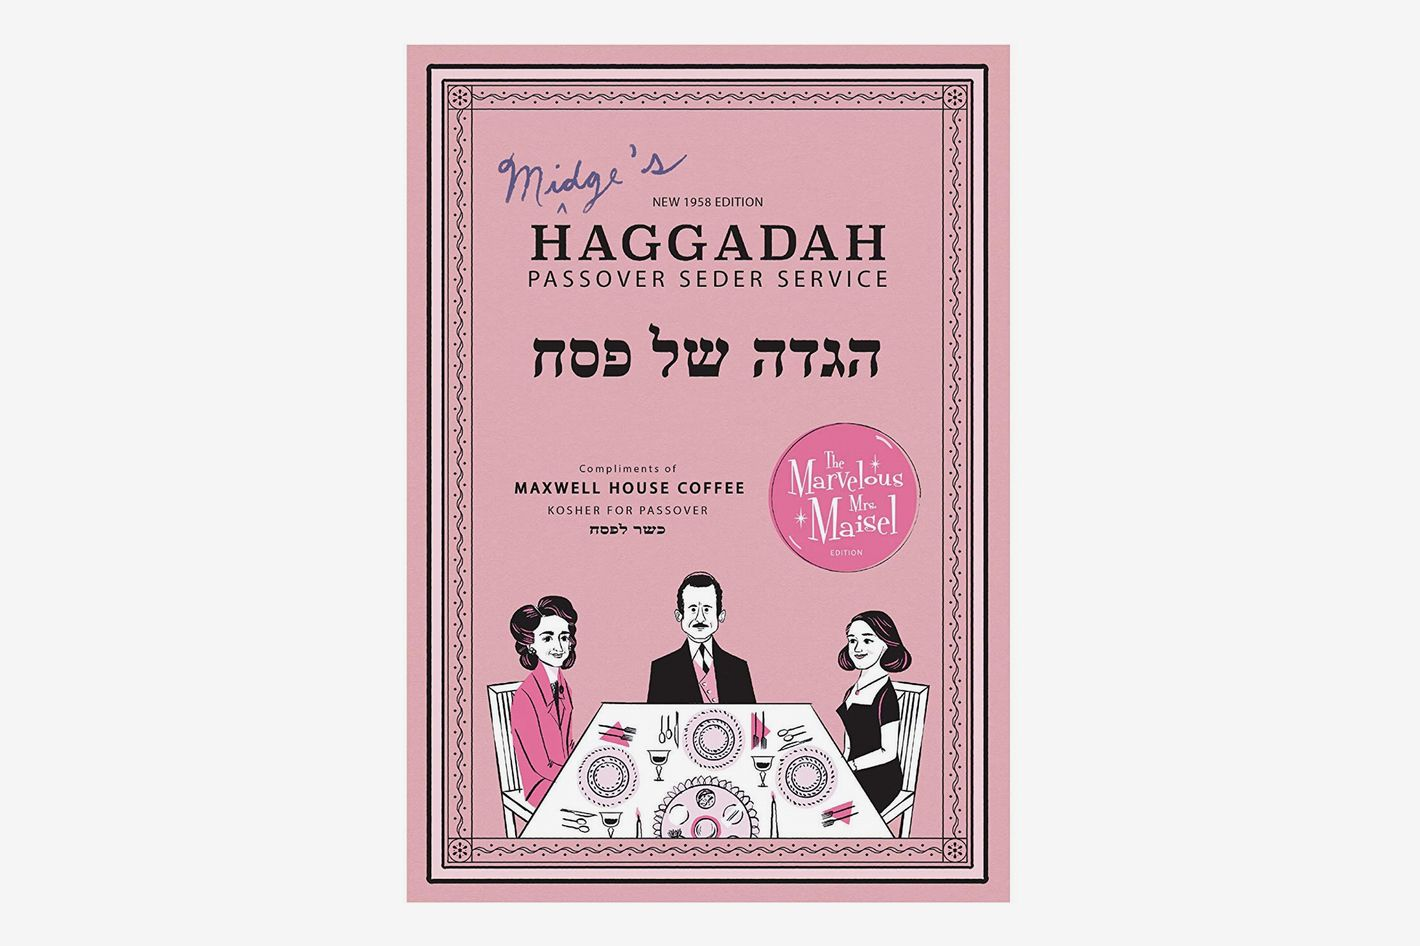 Maxwell House Original Roast Ground Coffee Filter Packs and The Marvelous Mrs. Maisel Limited Edition Passover Haggadah